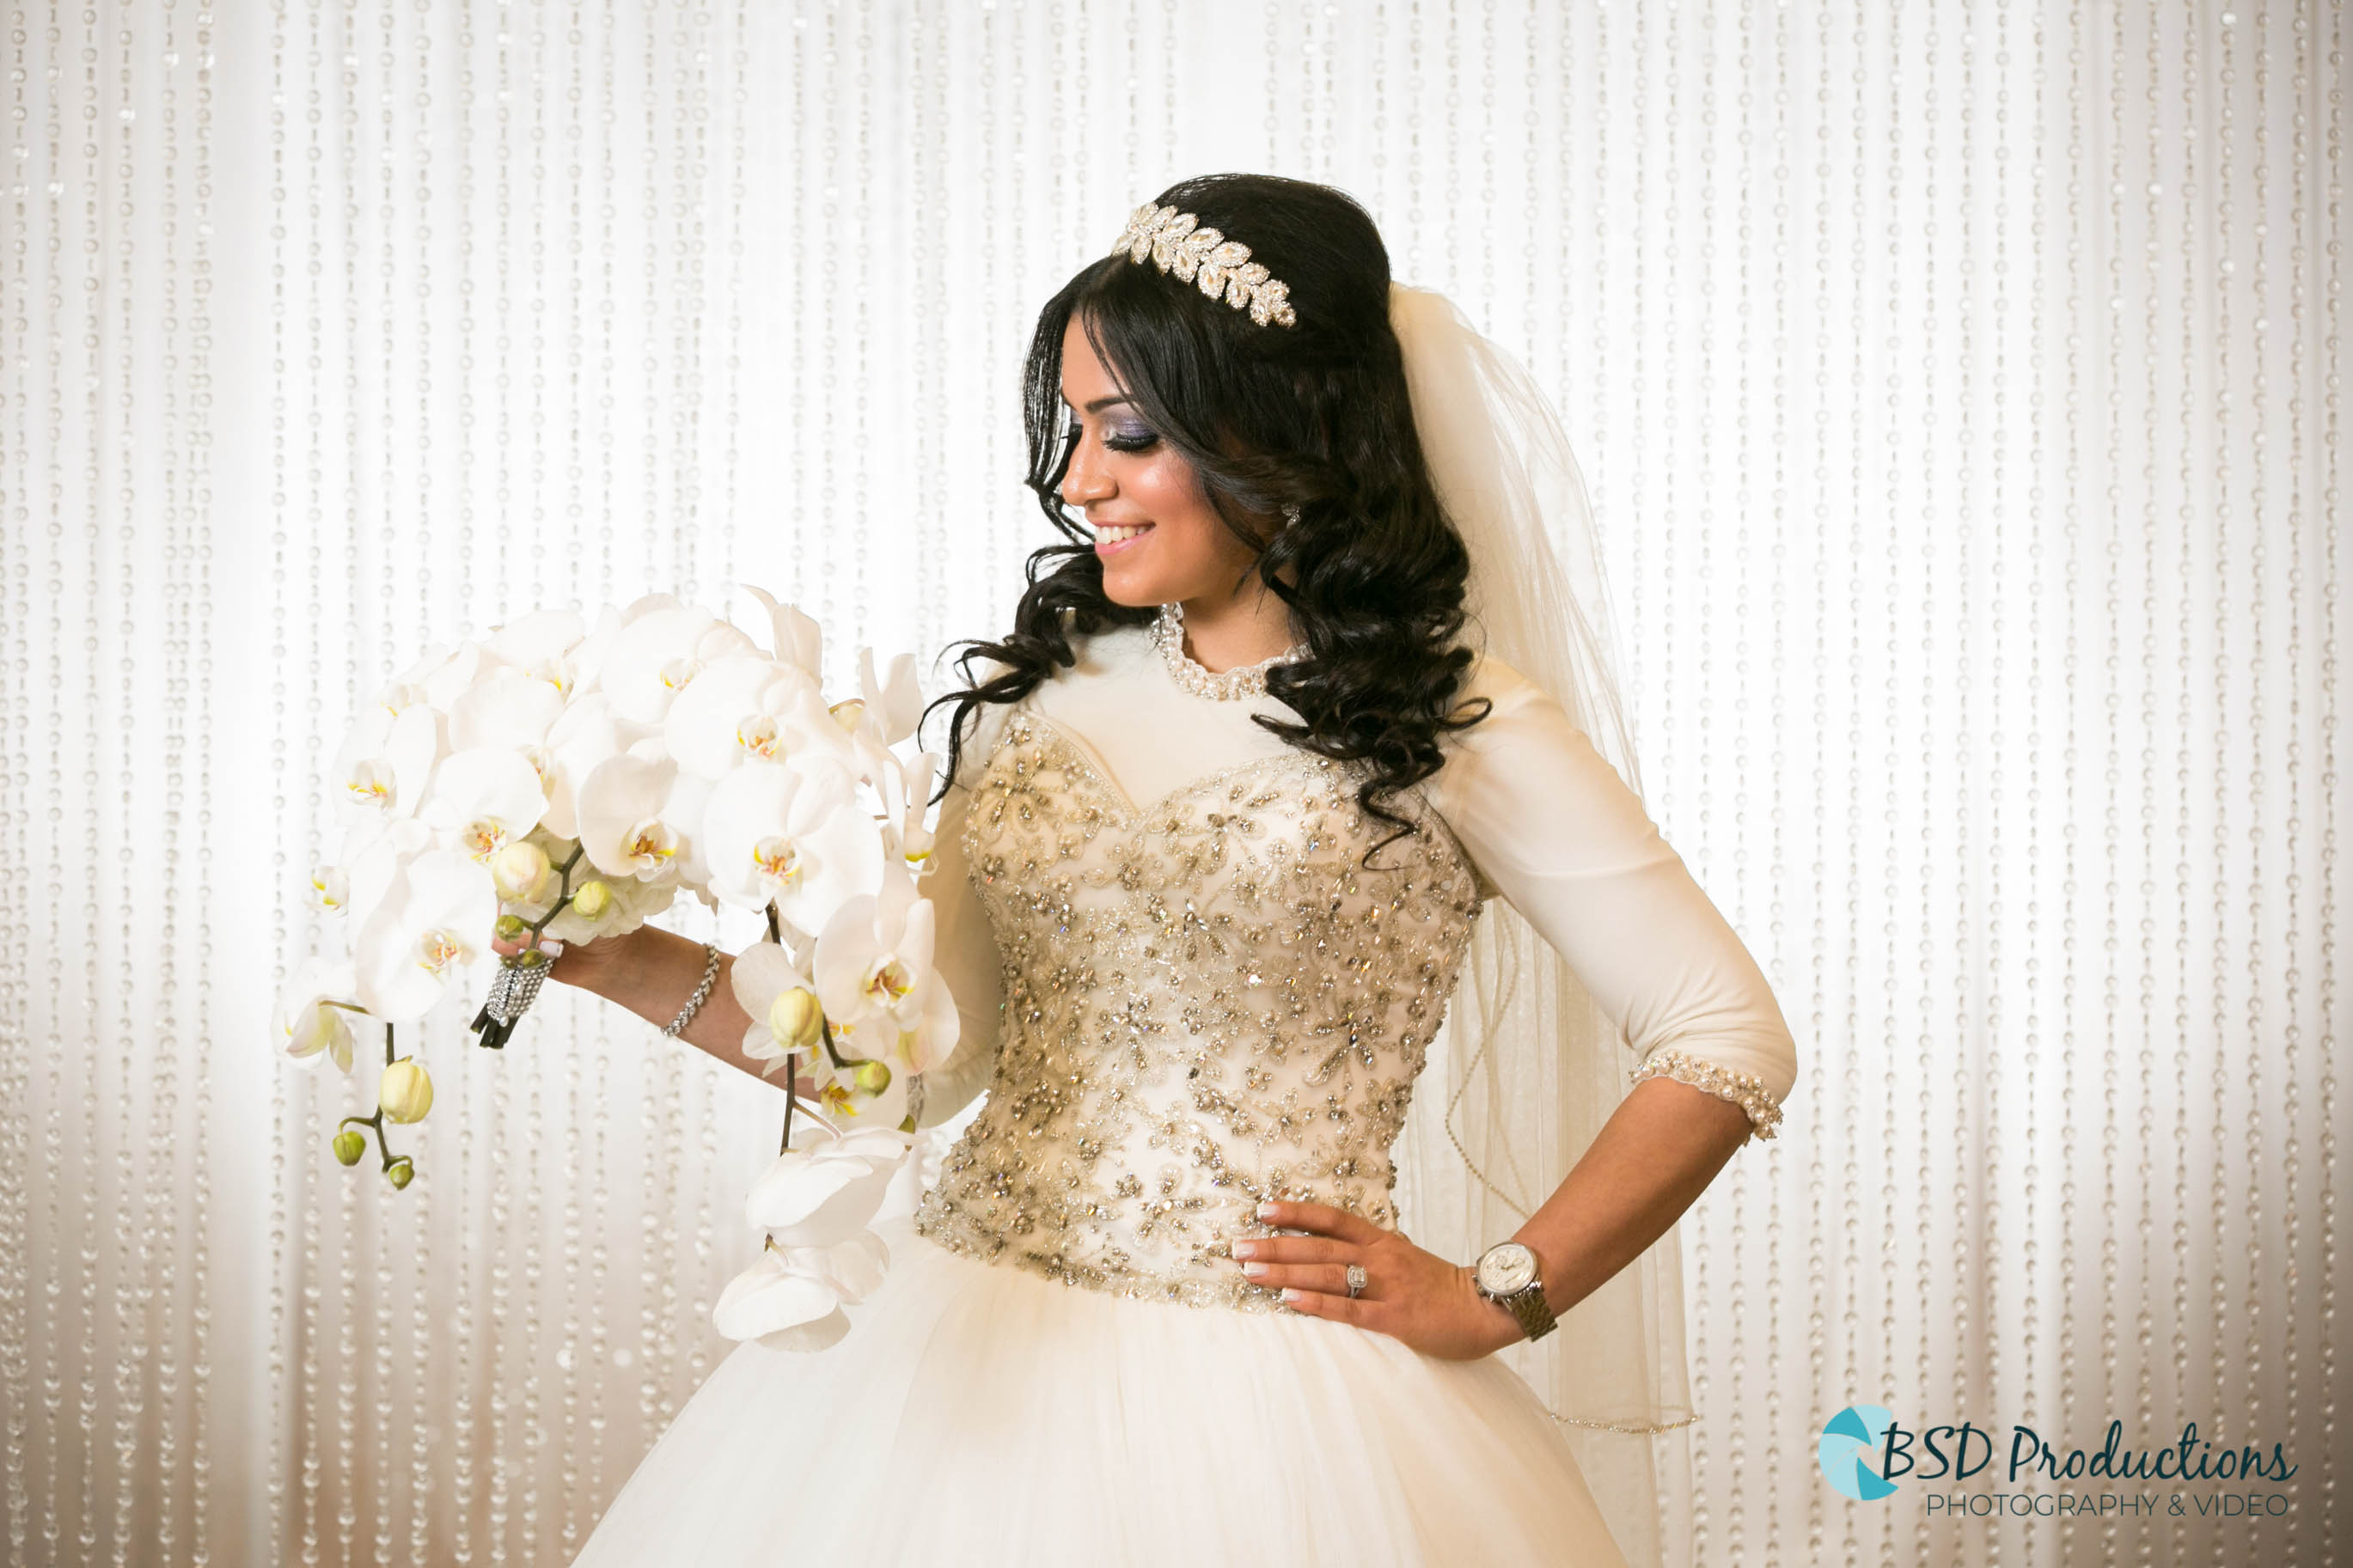 UH5A8984 Wedding – BSD Productions Photography